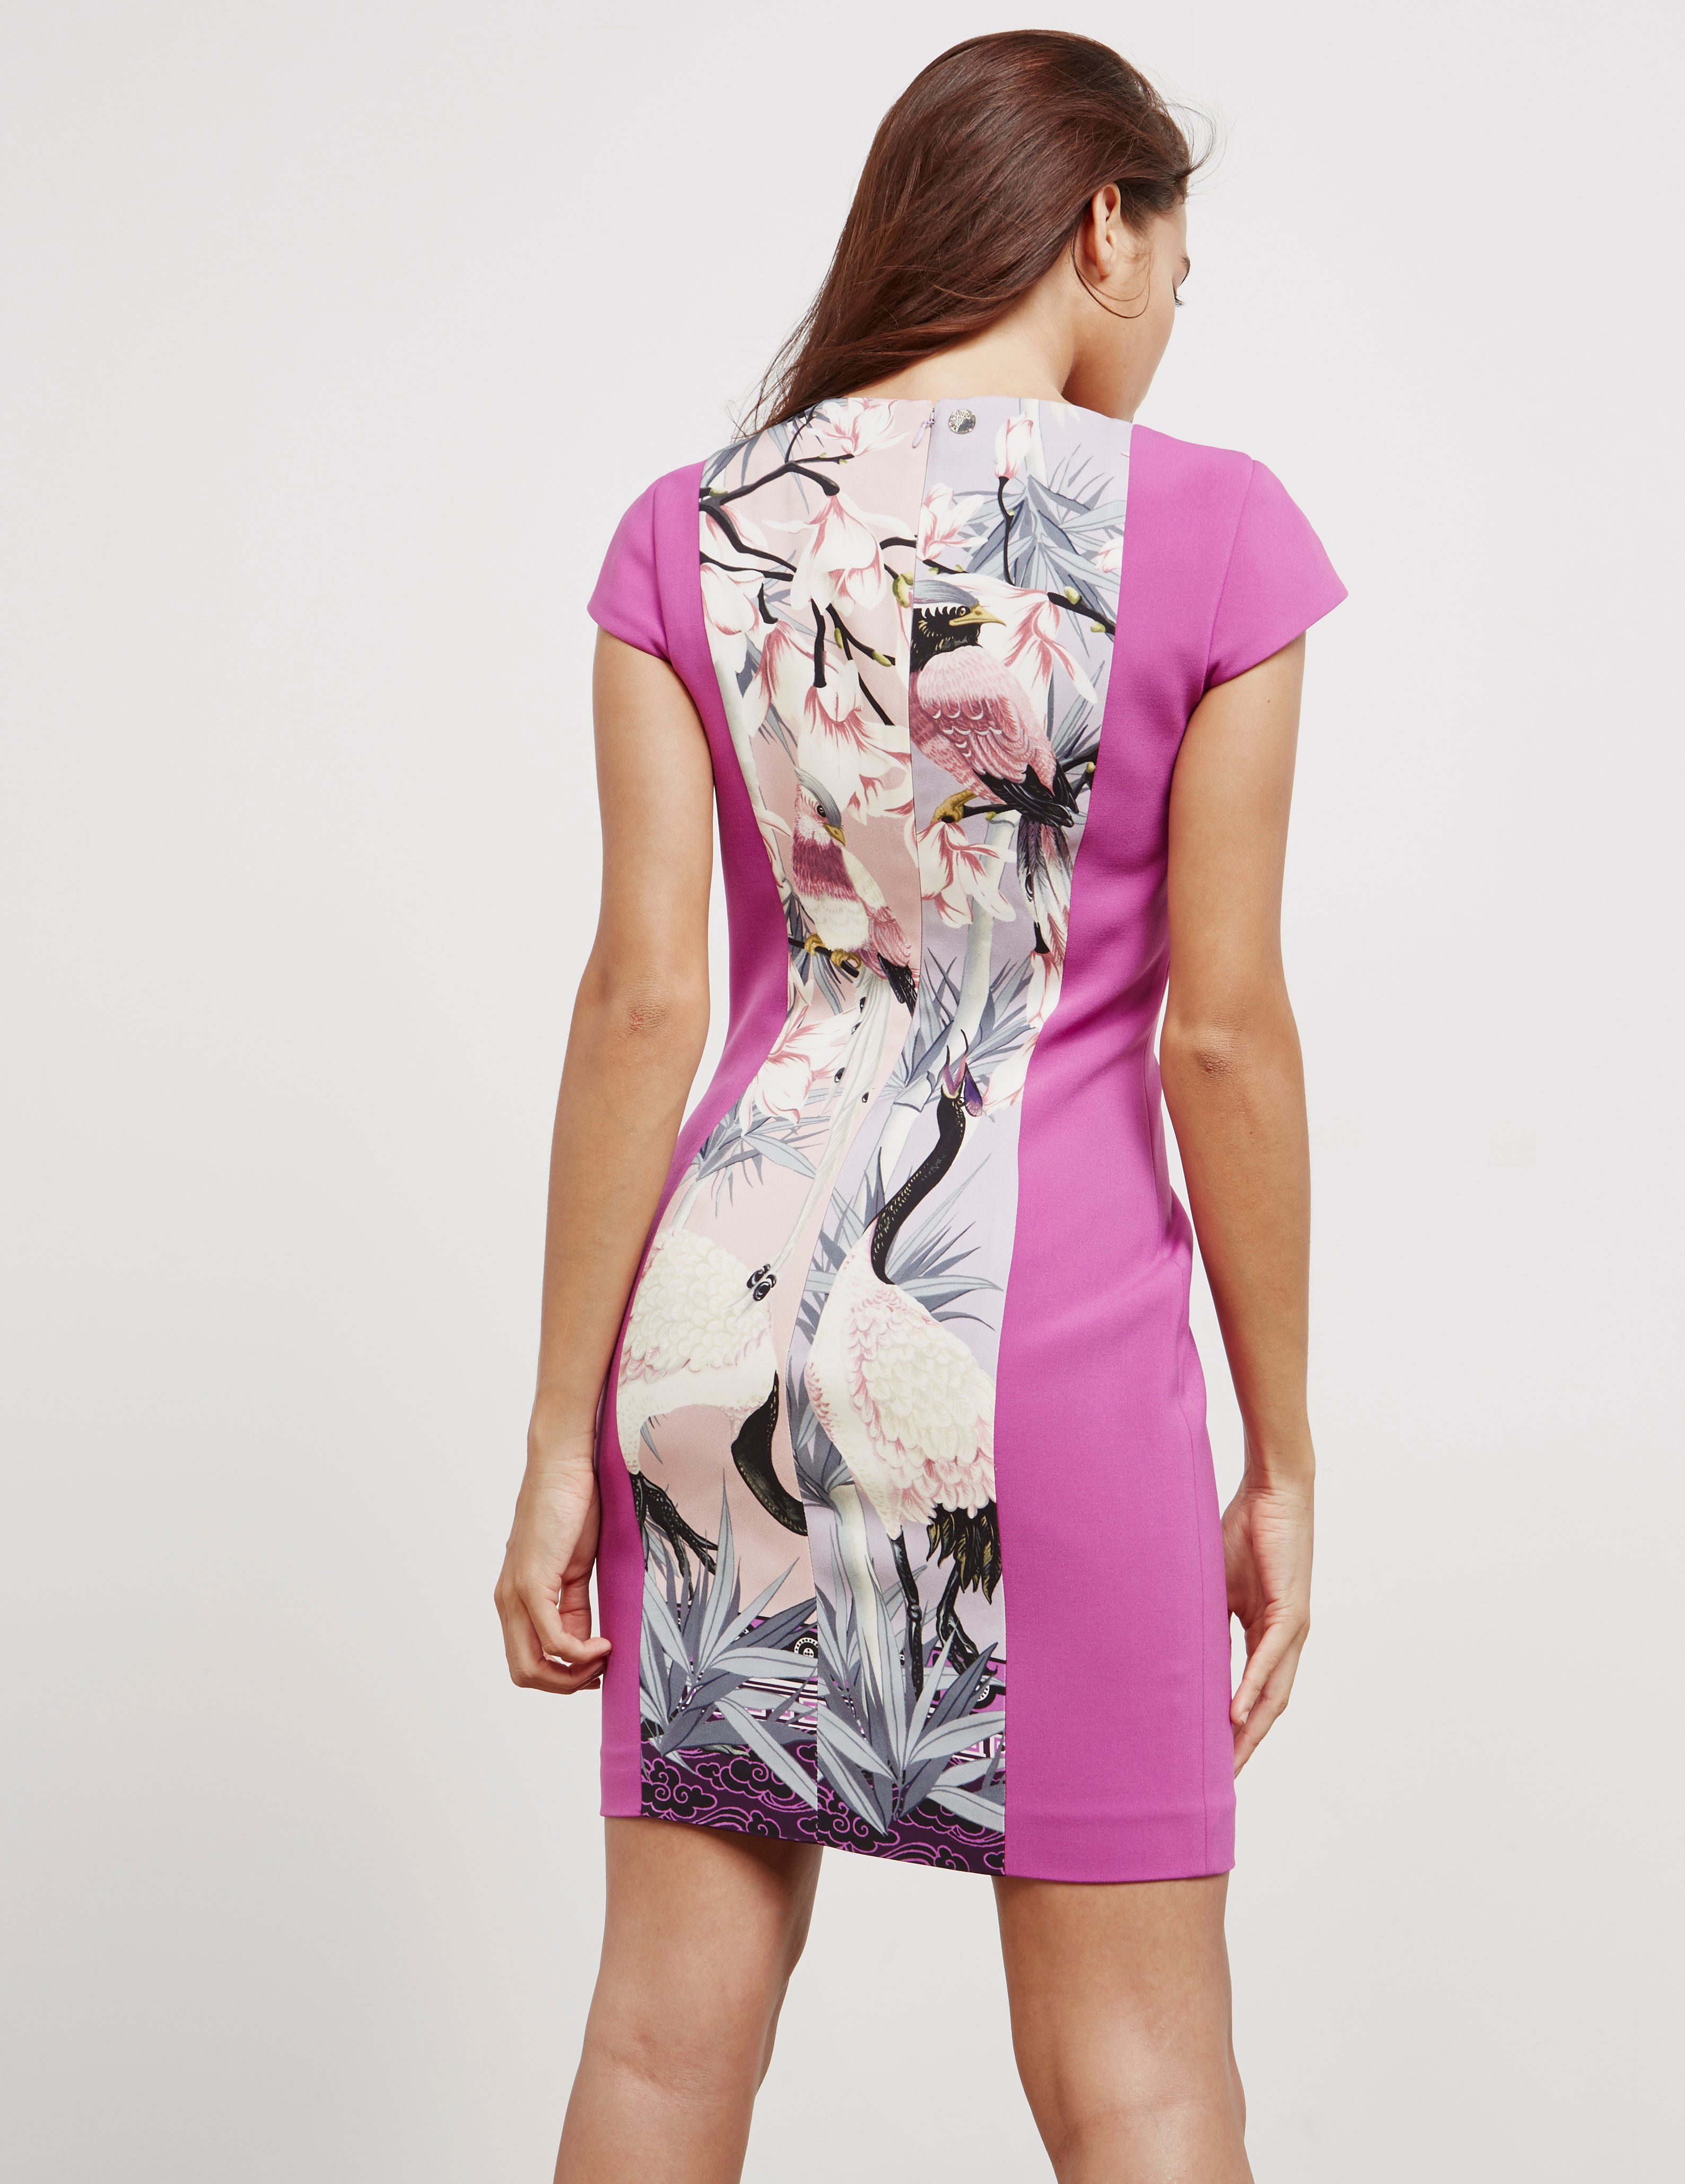 Versace Graphic Print Dress - Online Exclusive